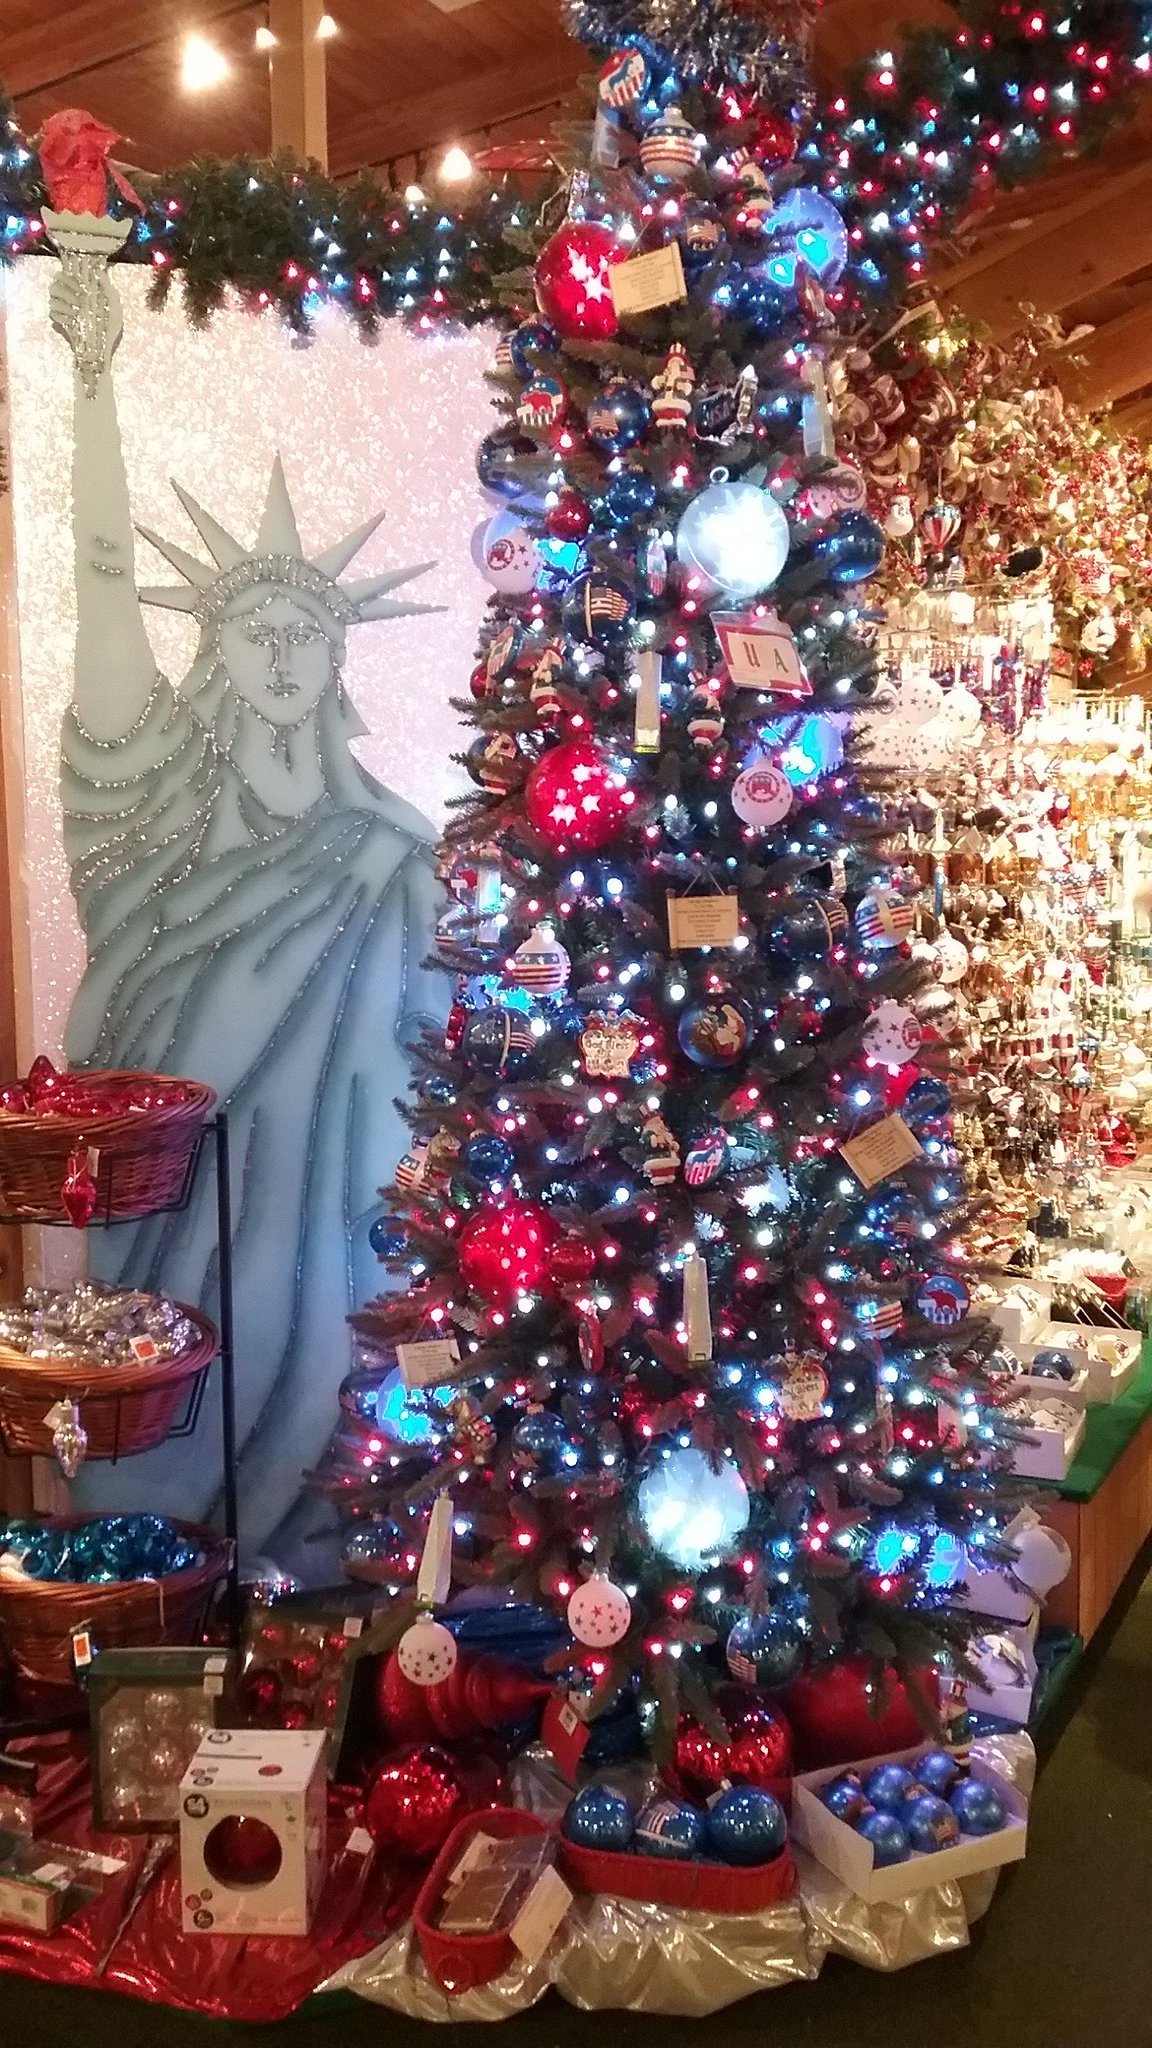 Lisa Warir On Twitter Bronners Christmas Store Frankenmuth, Mi Where